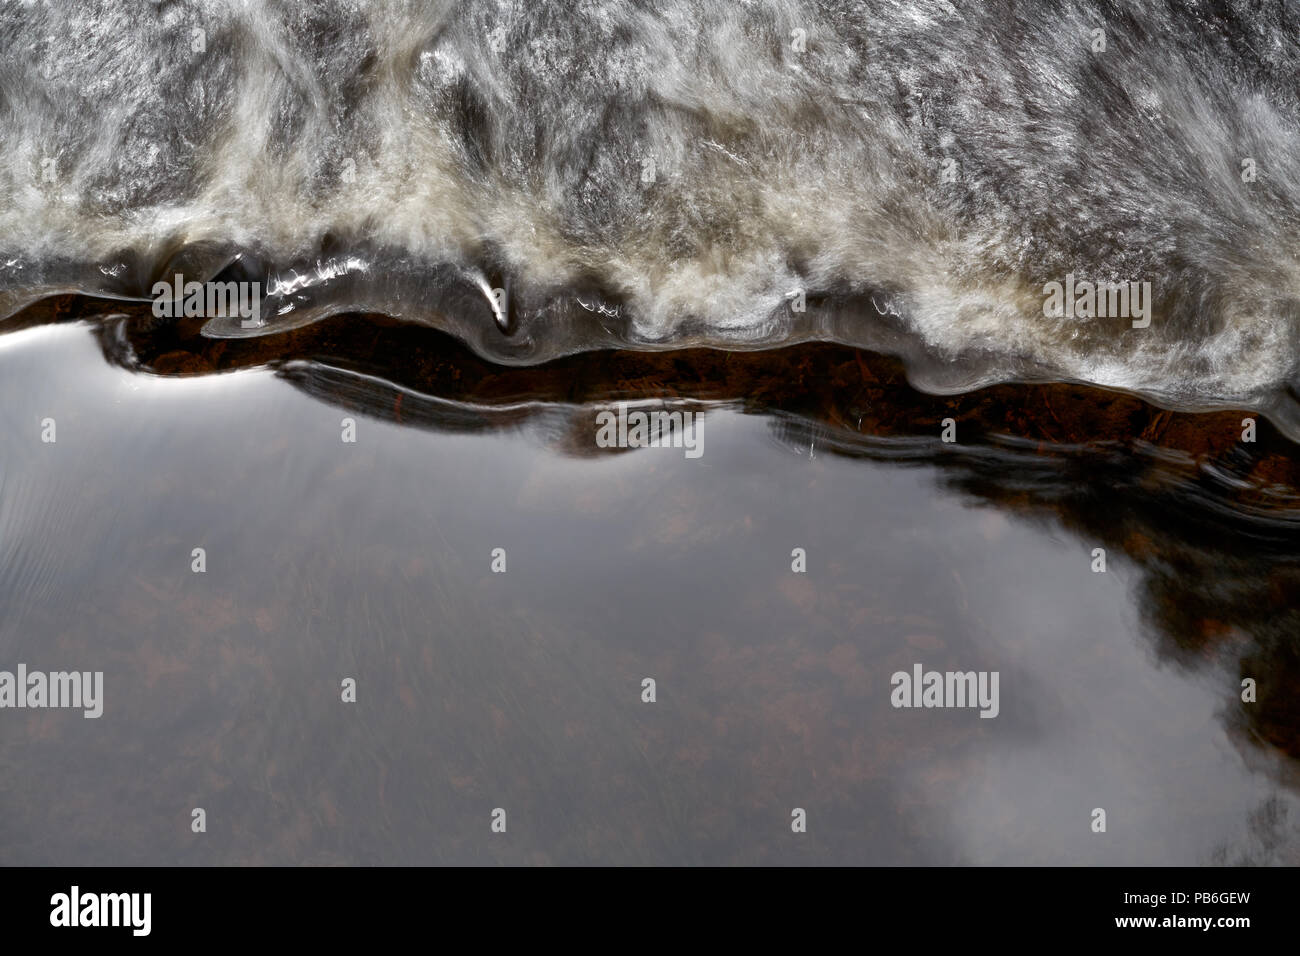 Abstact of running water in drainage channel, Colac, Victoria, Australia. - Stock Image